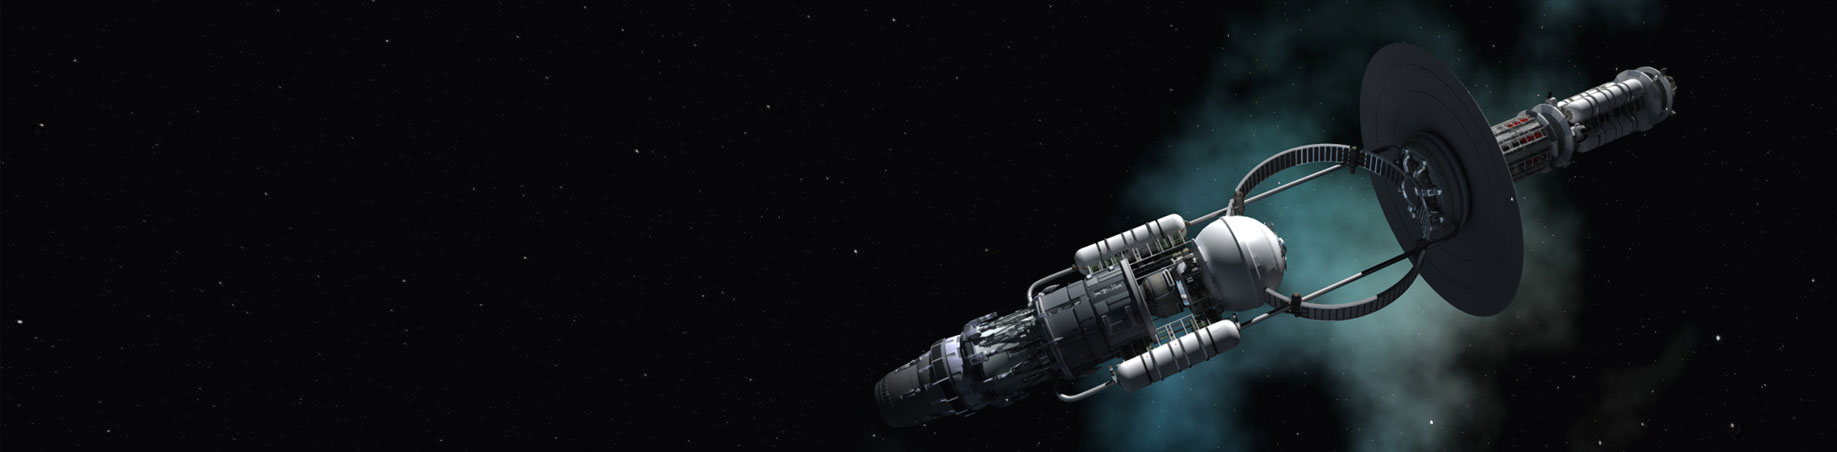 i4is announces Project Lyra: A mission to A/2017 U1, the interstellar asteroid!